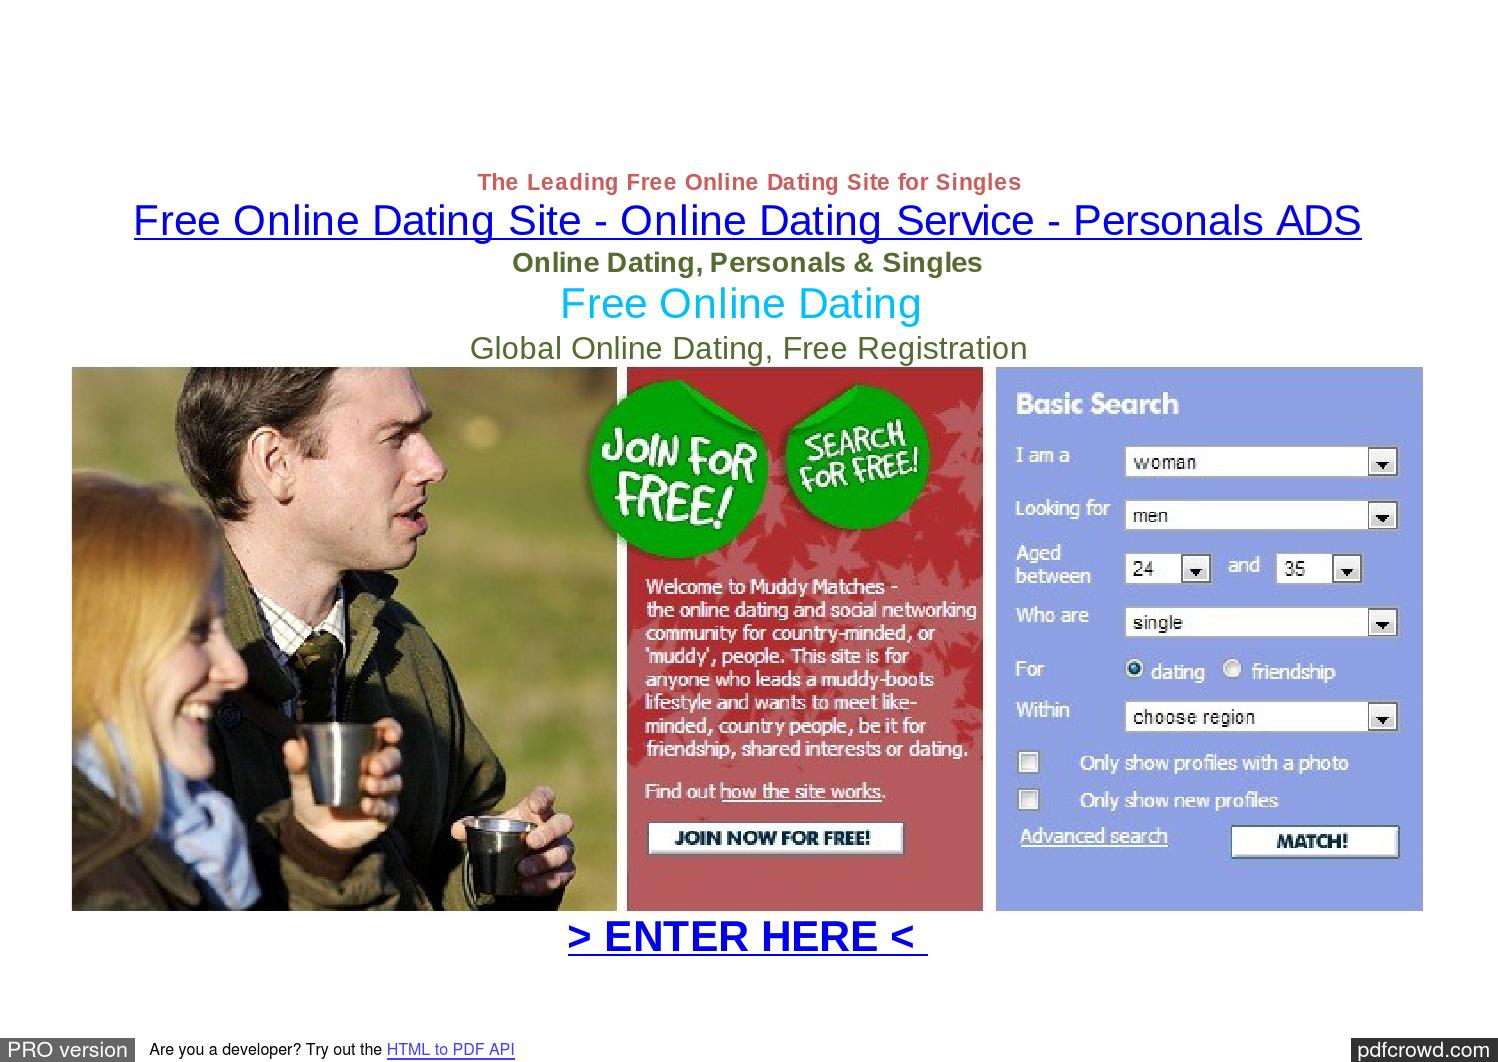 Airg free dating site